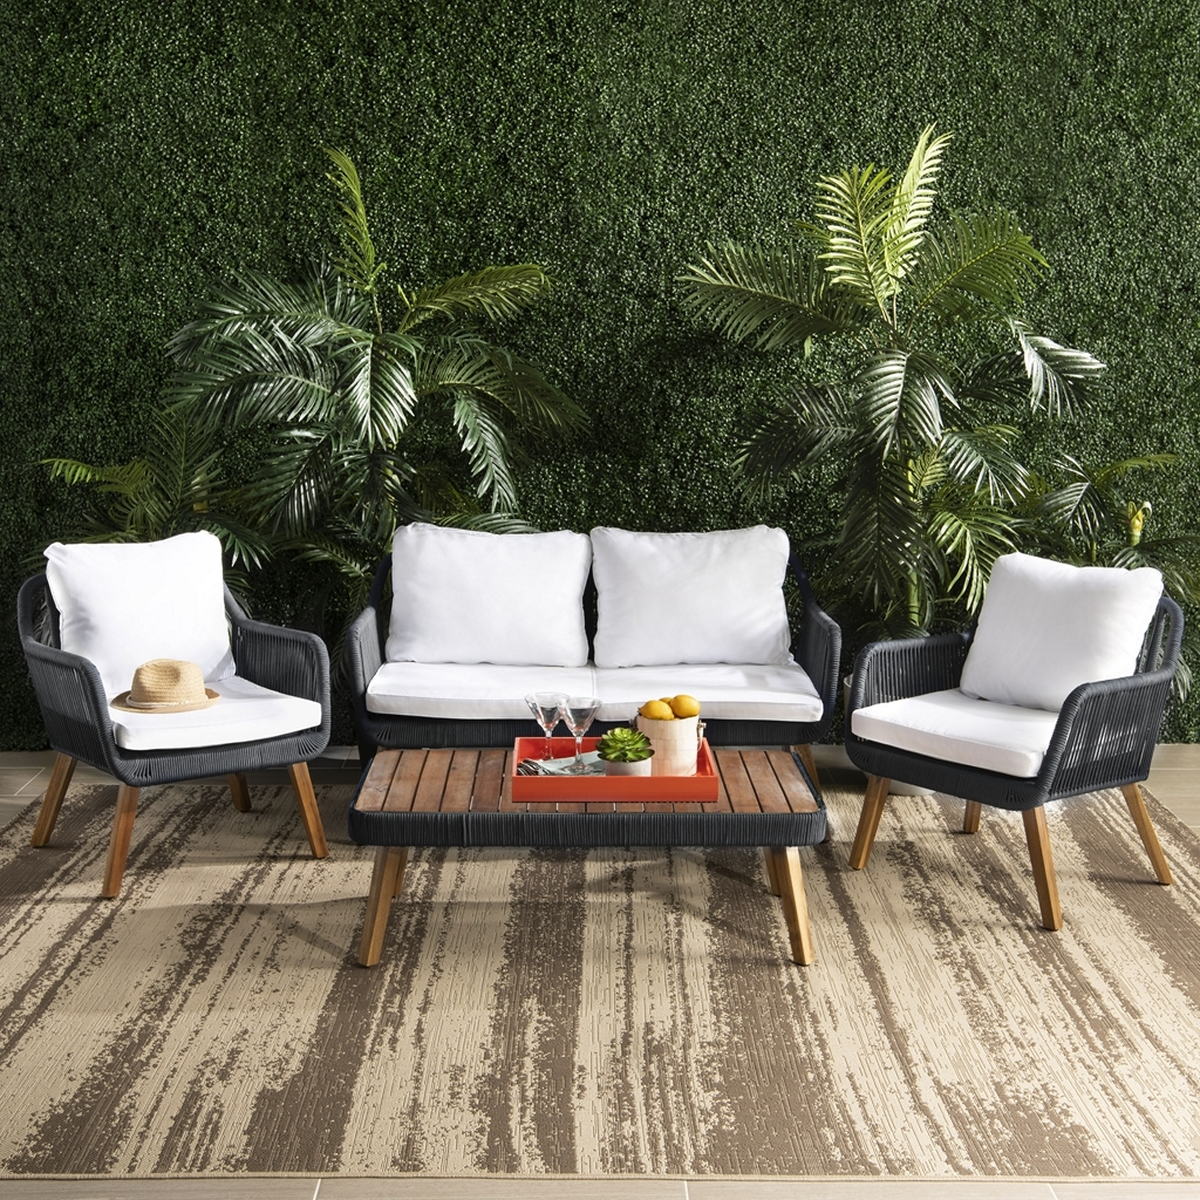 PAT7049B Patio Sets - 4 Piece - Furniture by Safavieh on Safavieh Raldin  id=77544